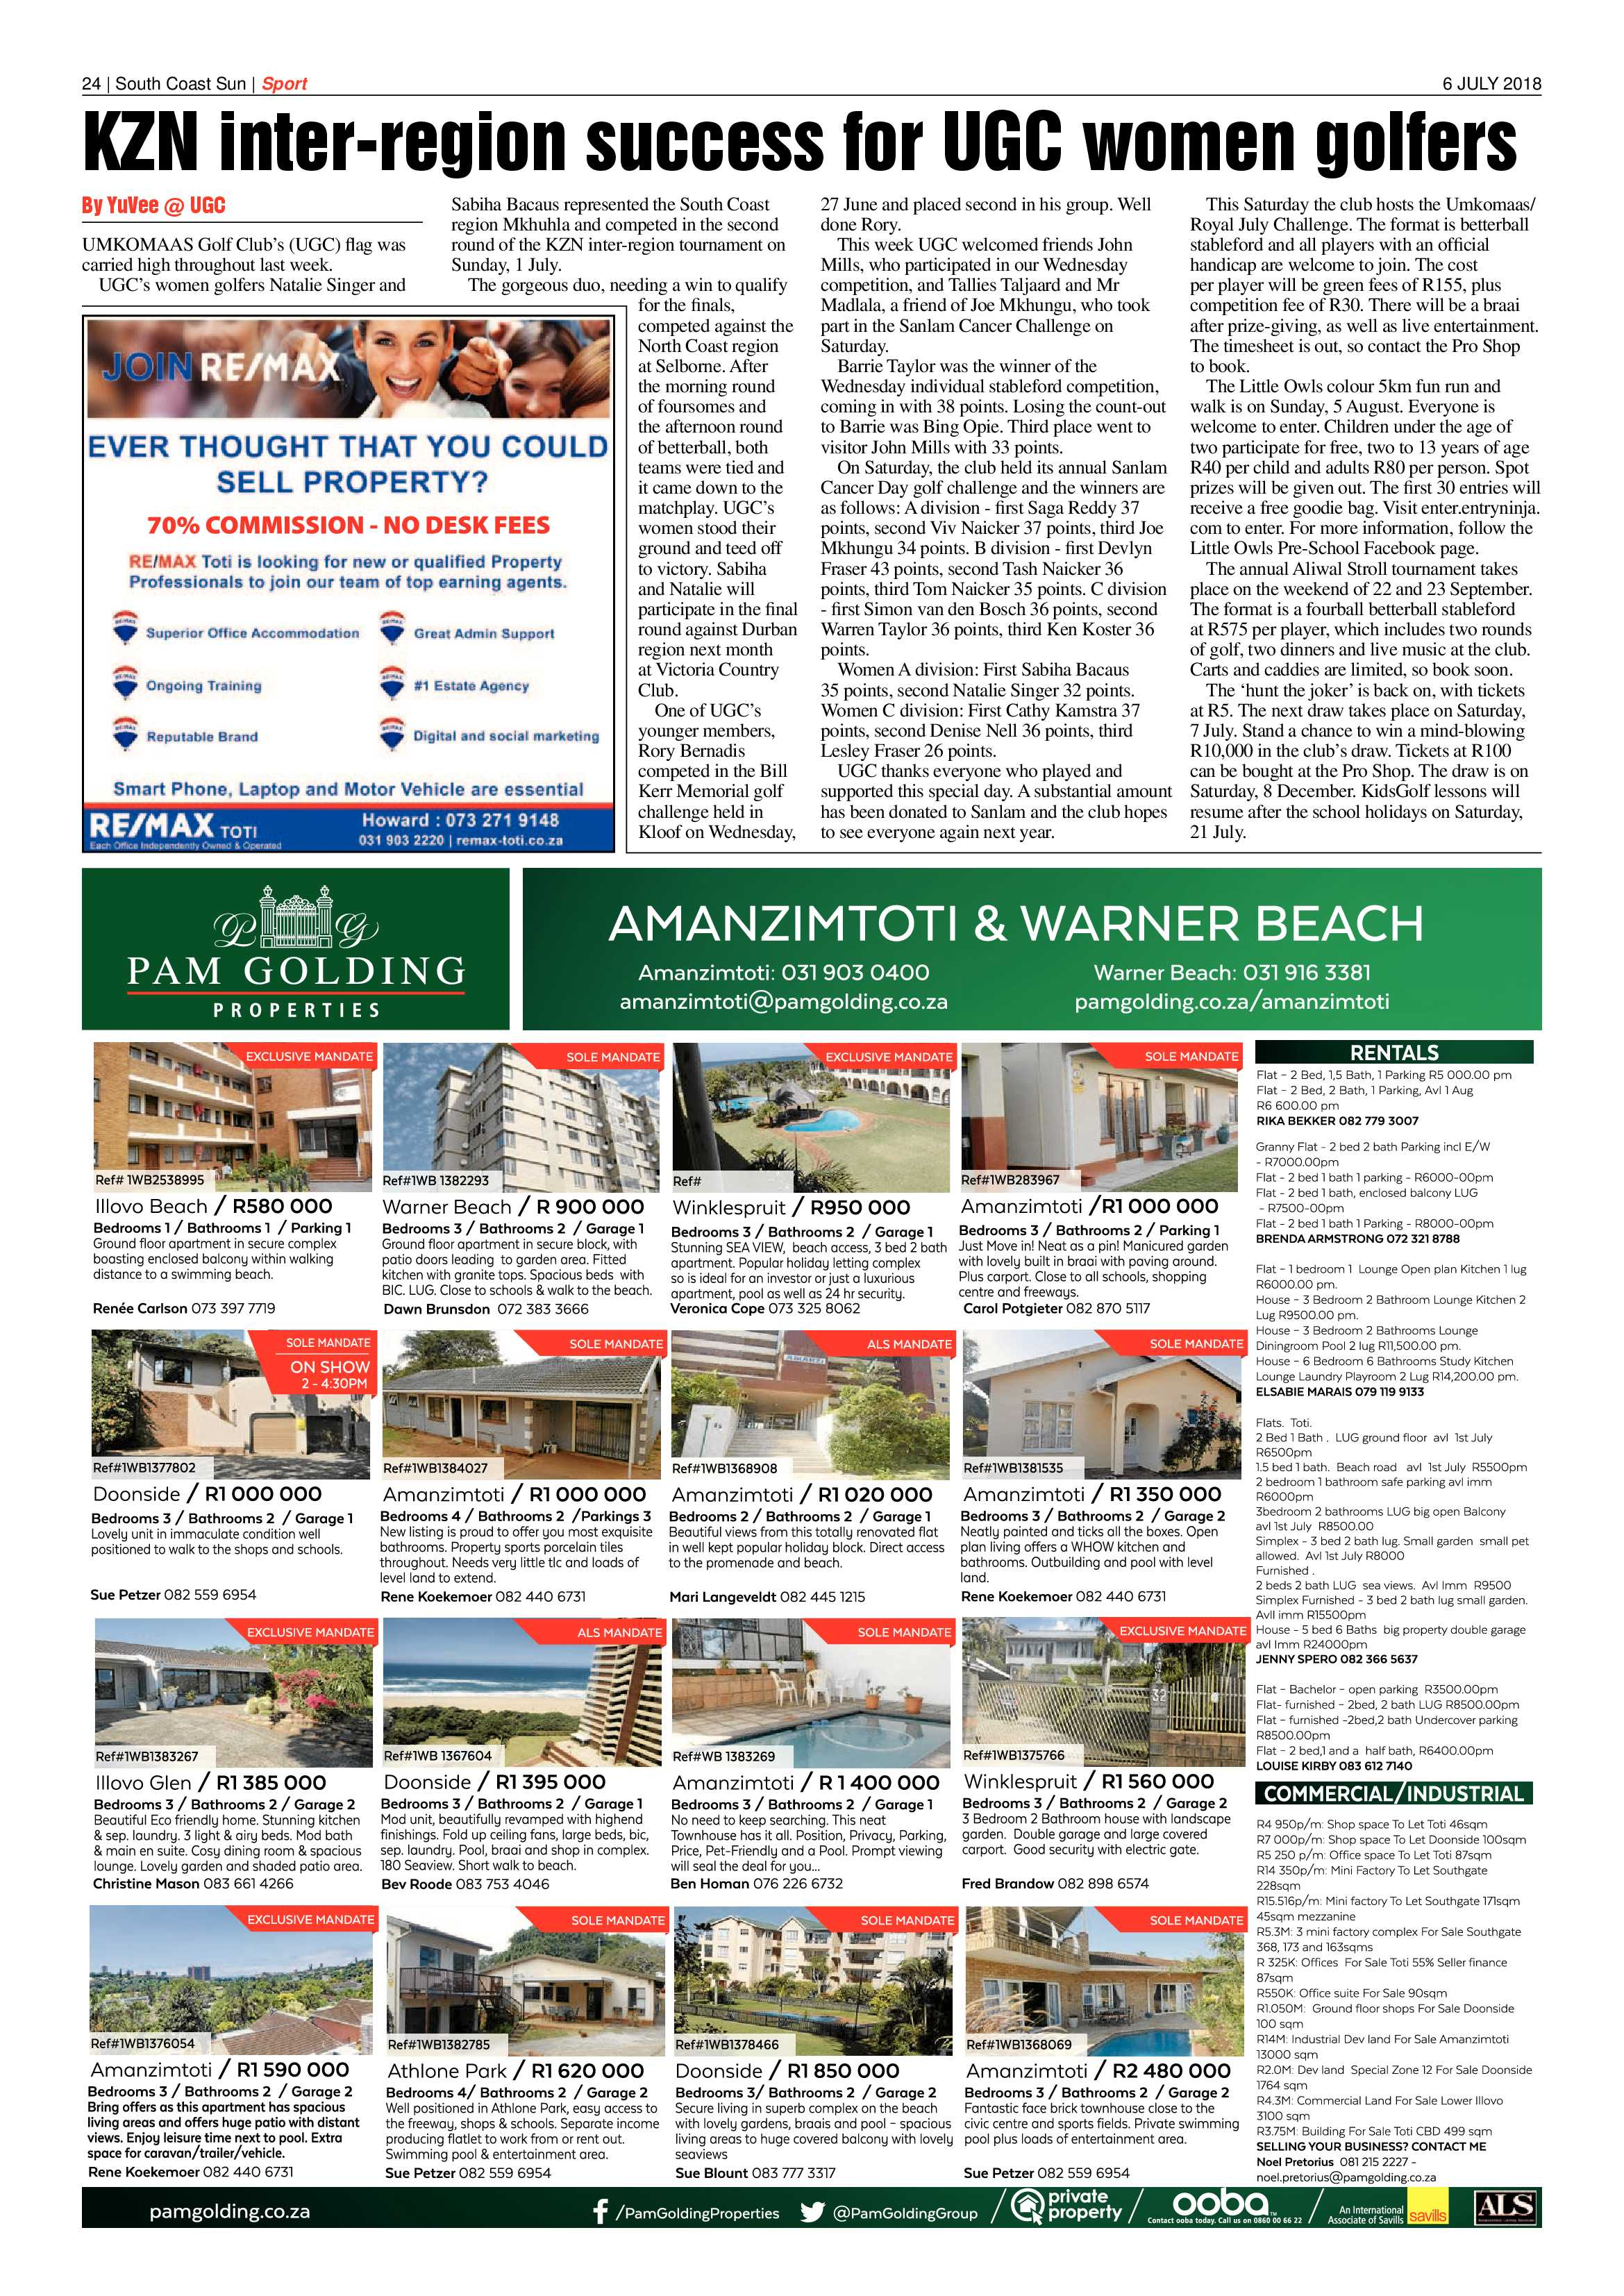 6-july-2018-epapers-page-22